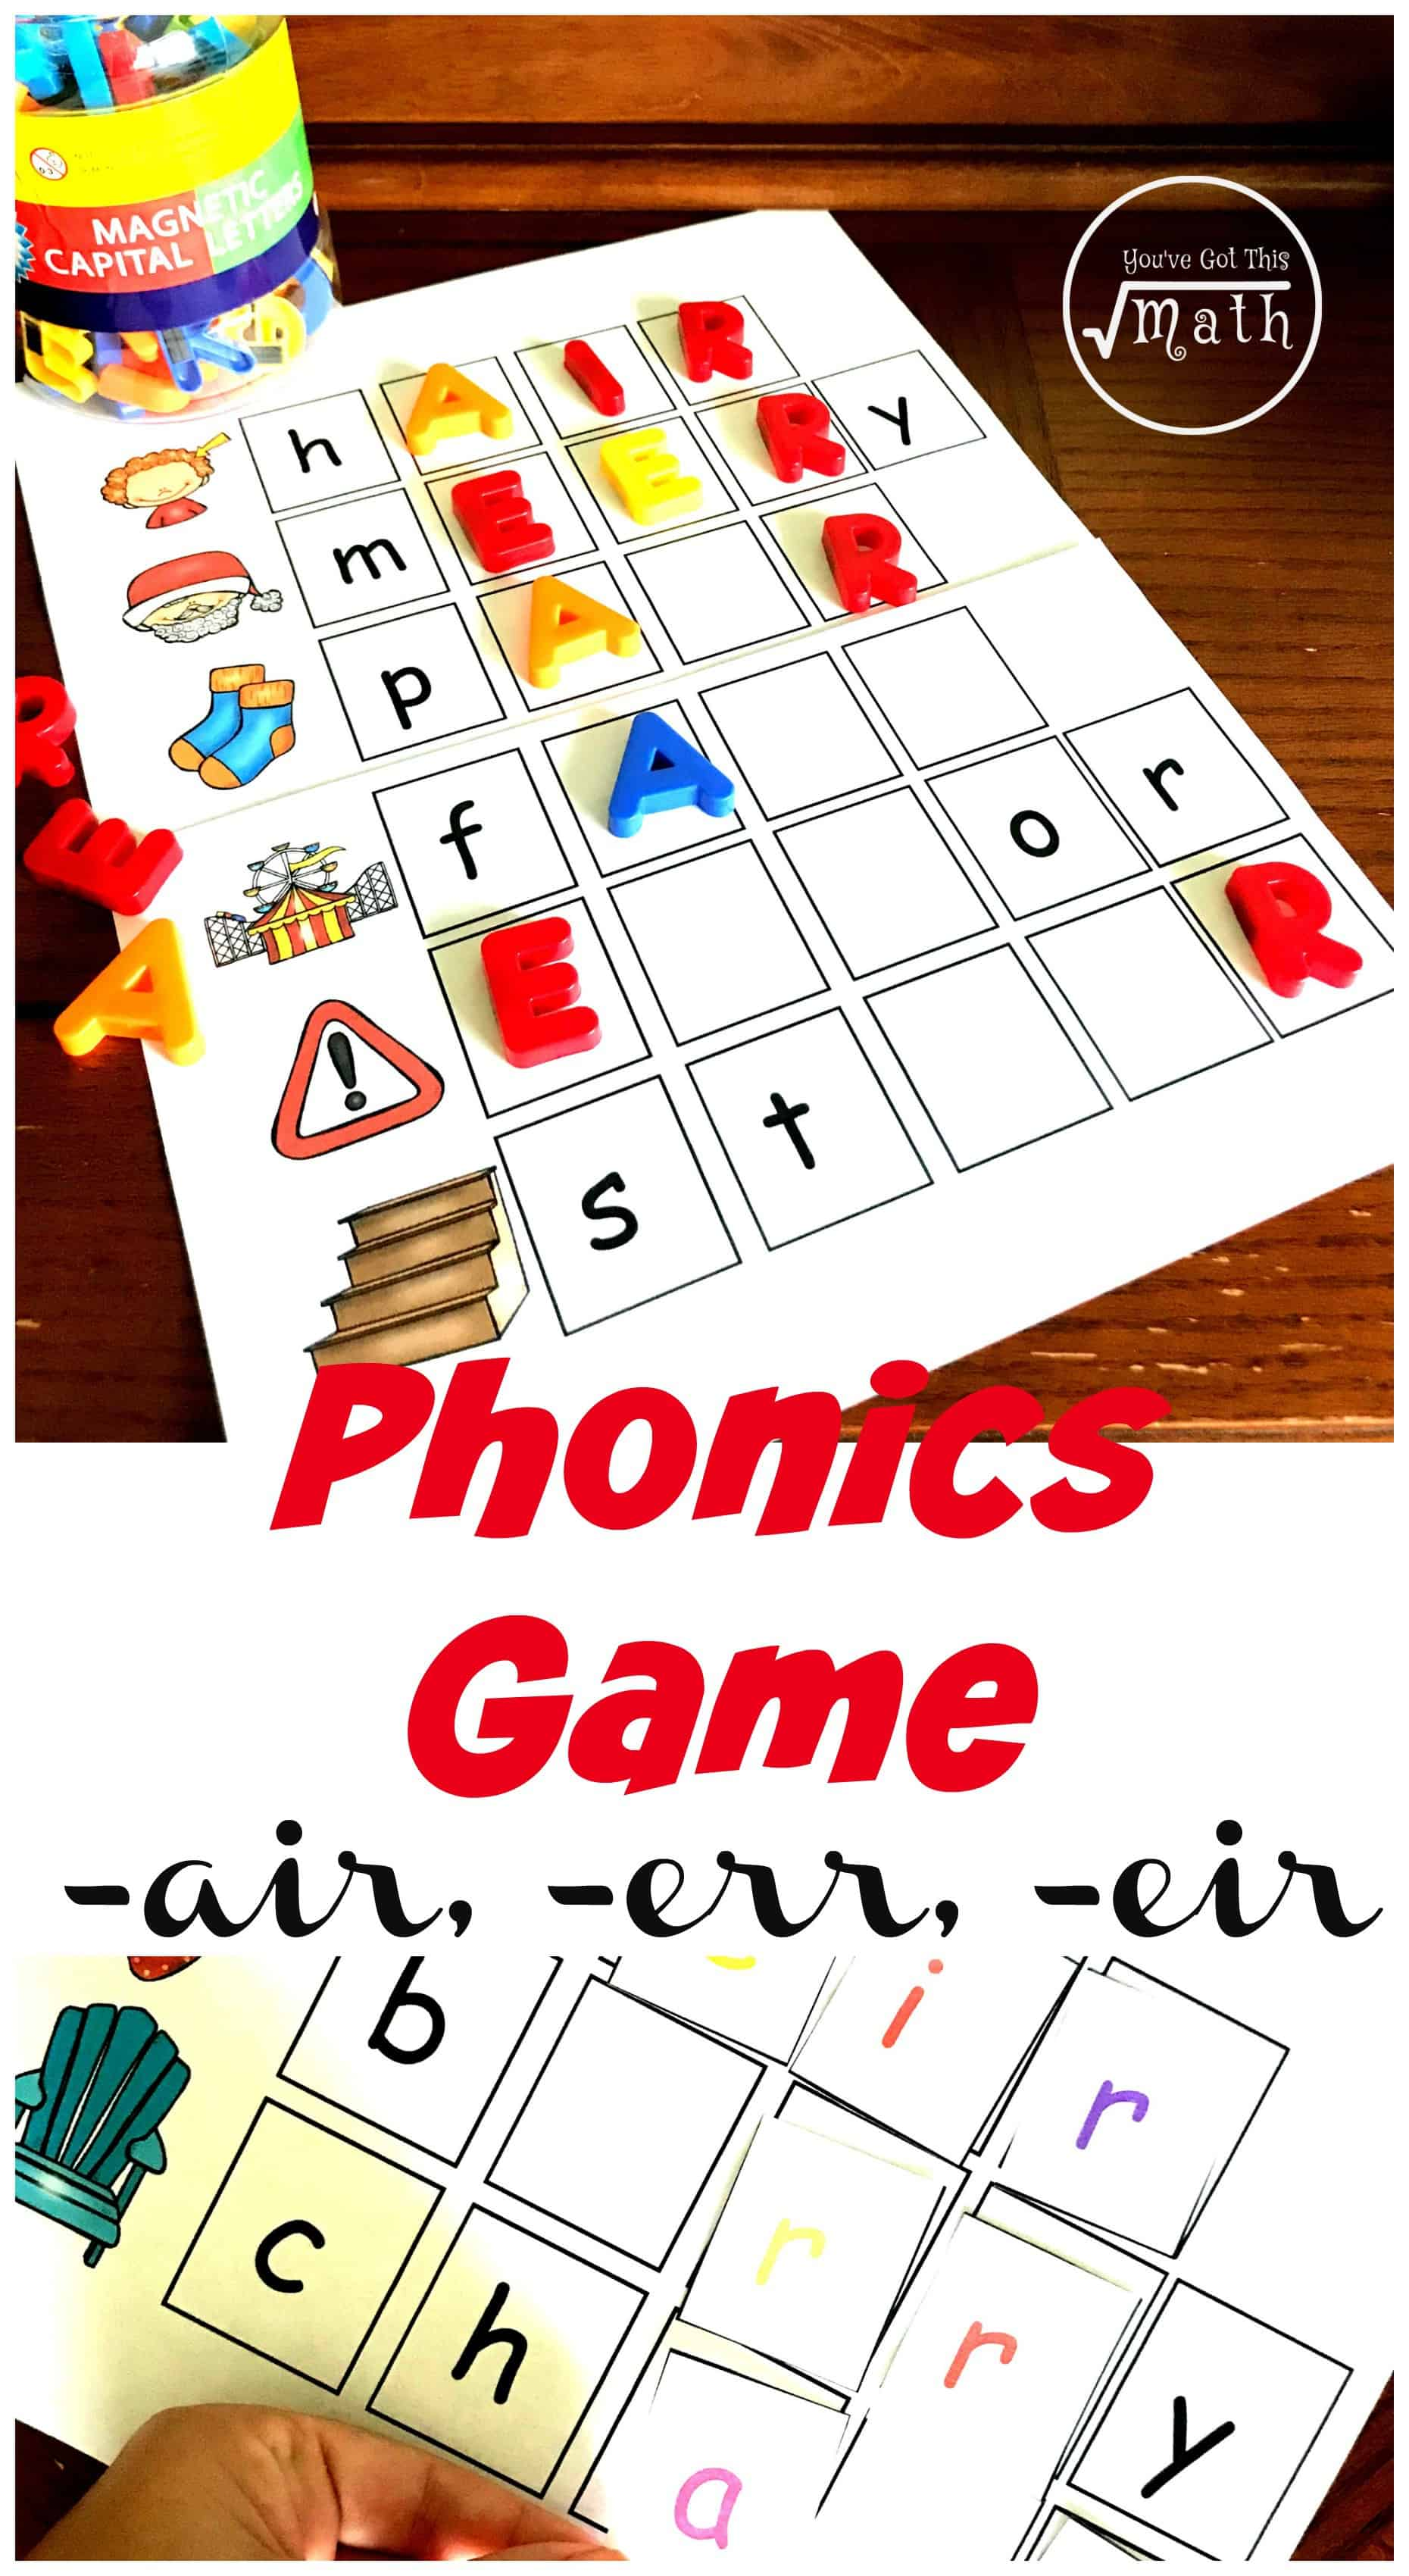 Are you working on air phonics skills? This game helps children build err, eir and air words in this fun fill in the blank activity.